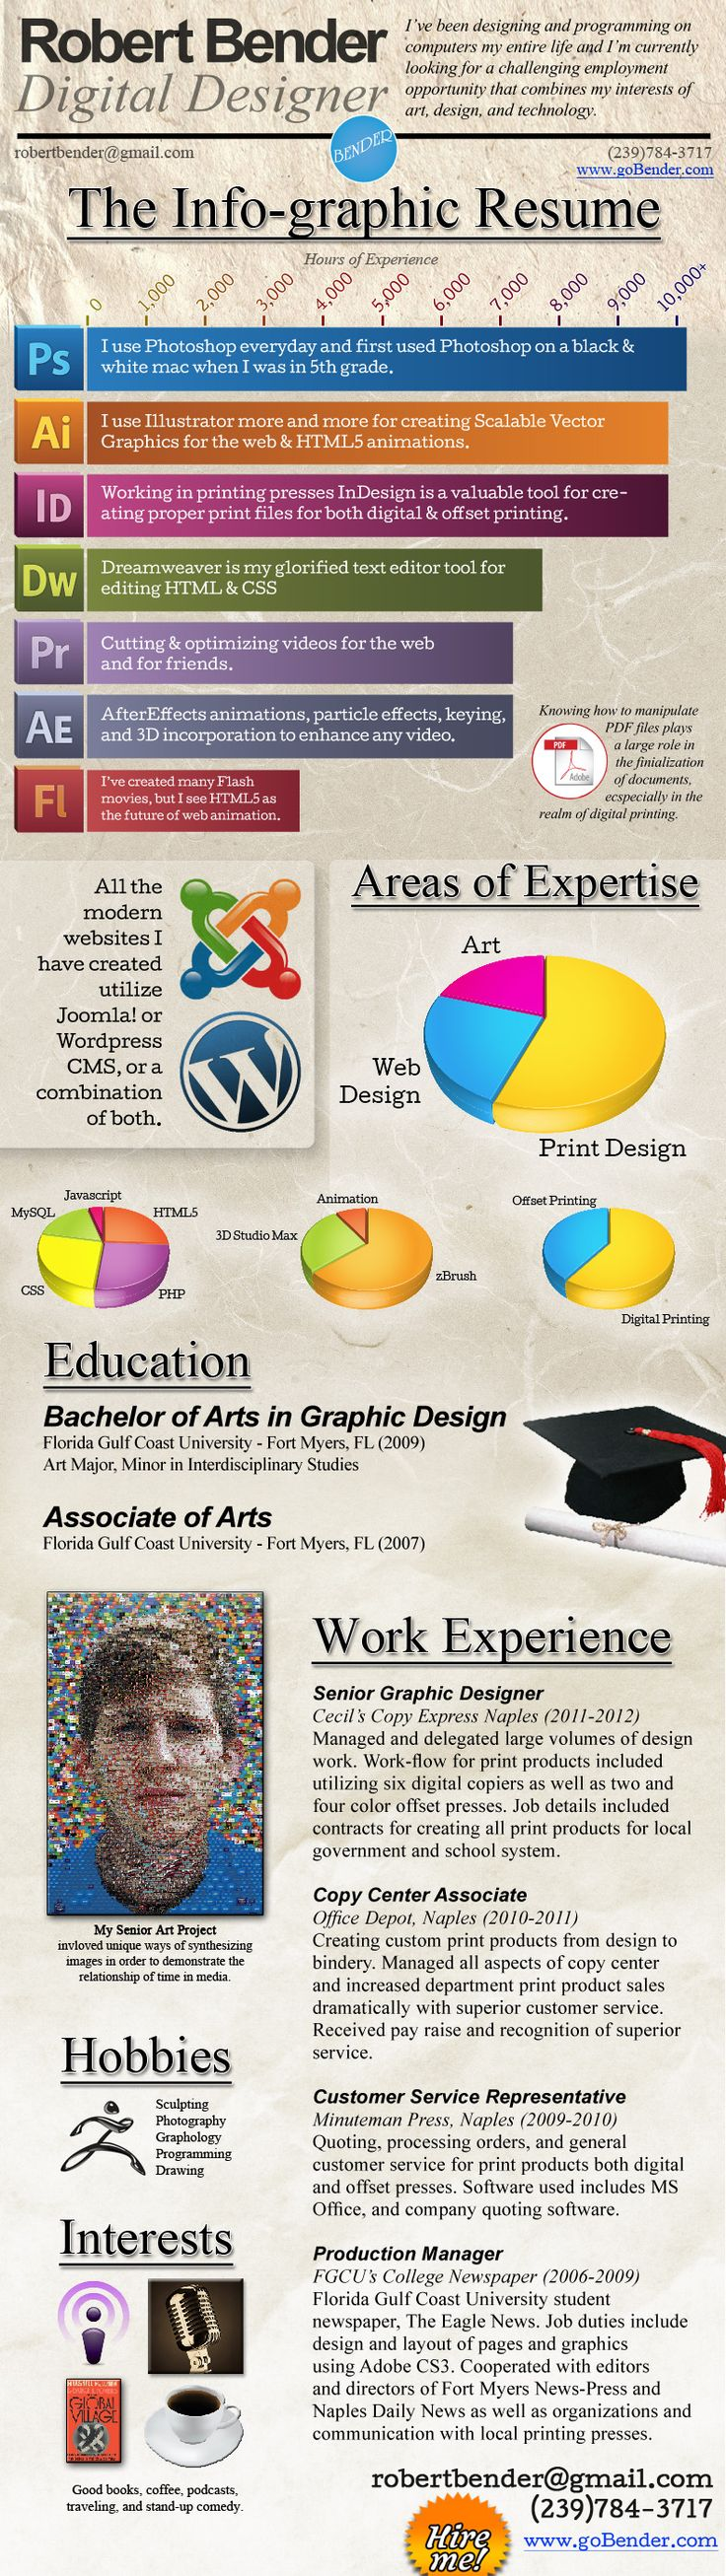 best images about resume tips creative designs my info graphic resume as a digital graphic designer my way of self